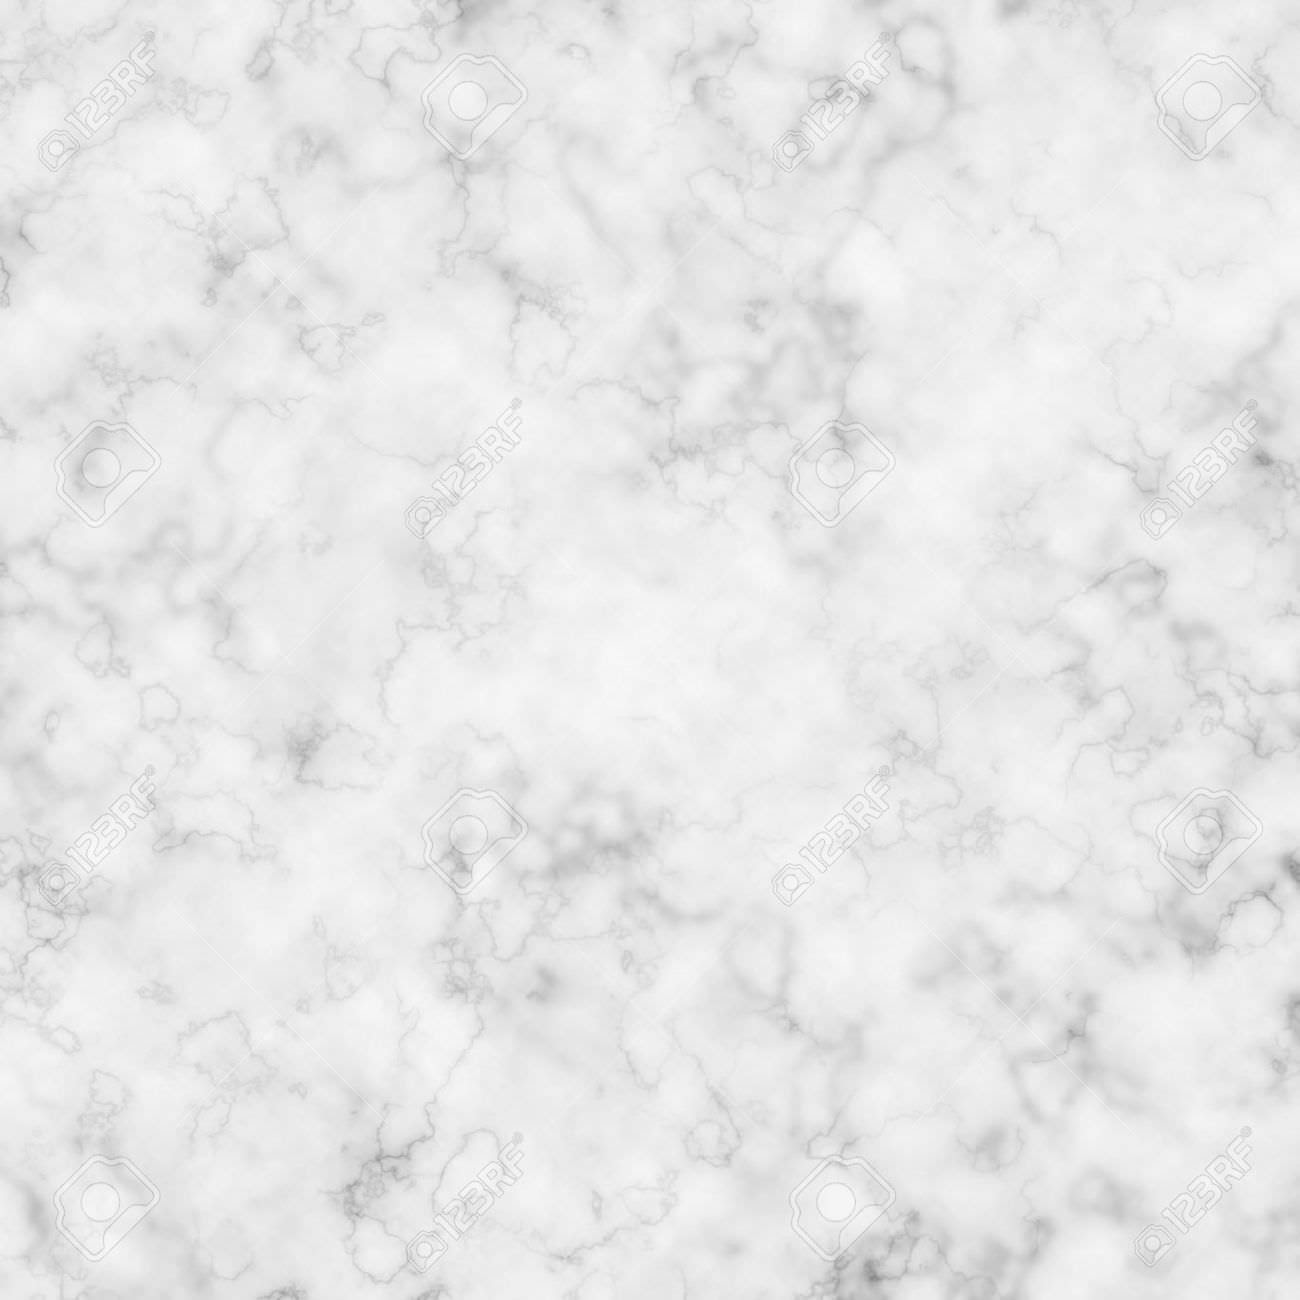 White Marble Background Powerpoint Backgrounds For Free Images, Photos, Reviews